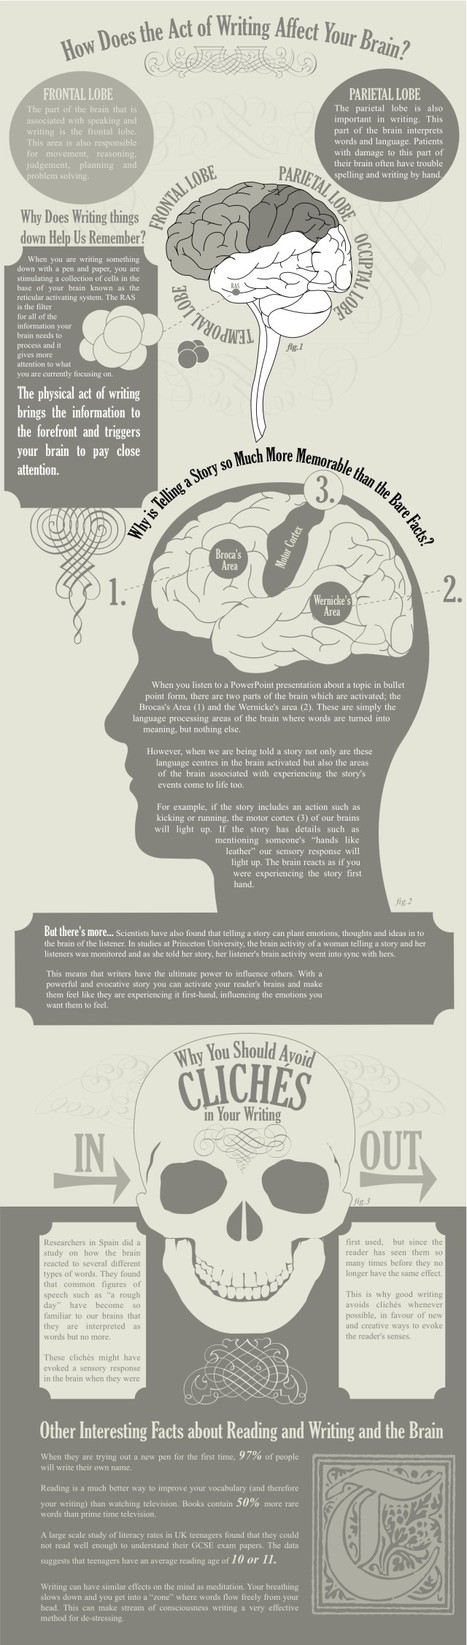 How Does Writing Affect Your Brain? [infographic] | 21st Century Literacy and Learning | Scoop.it